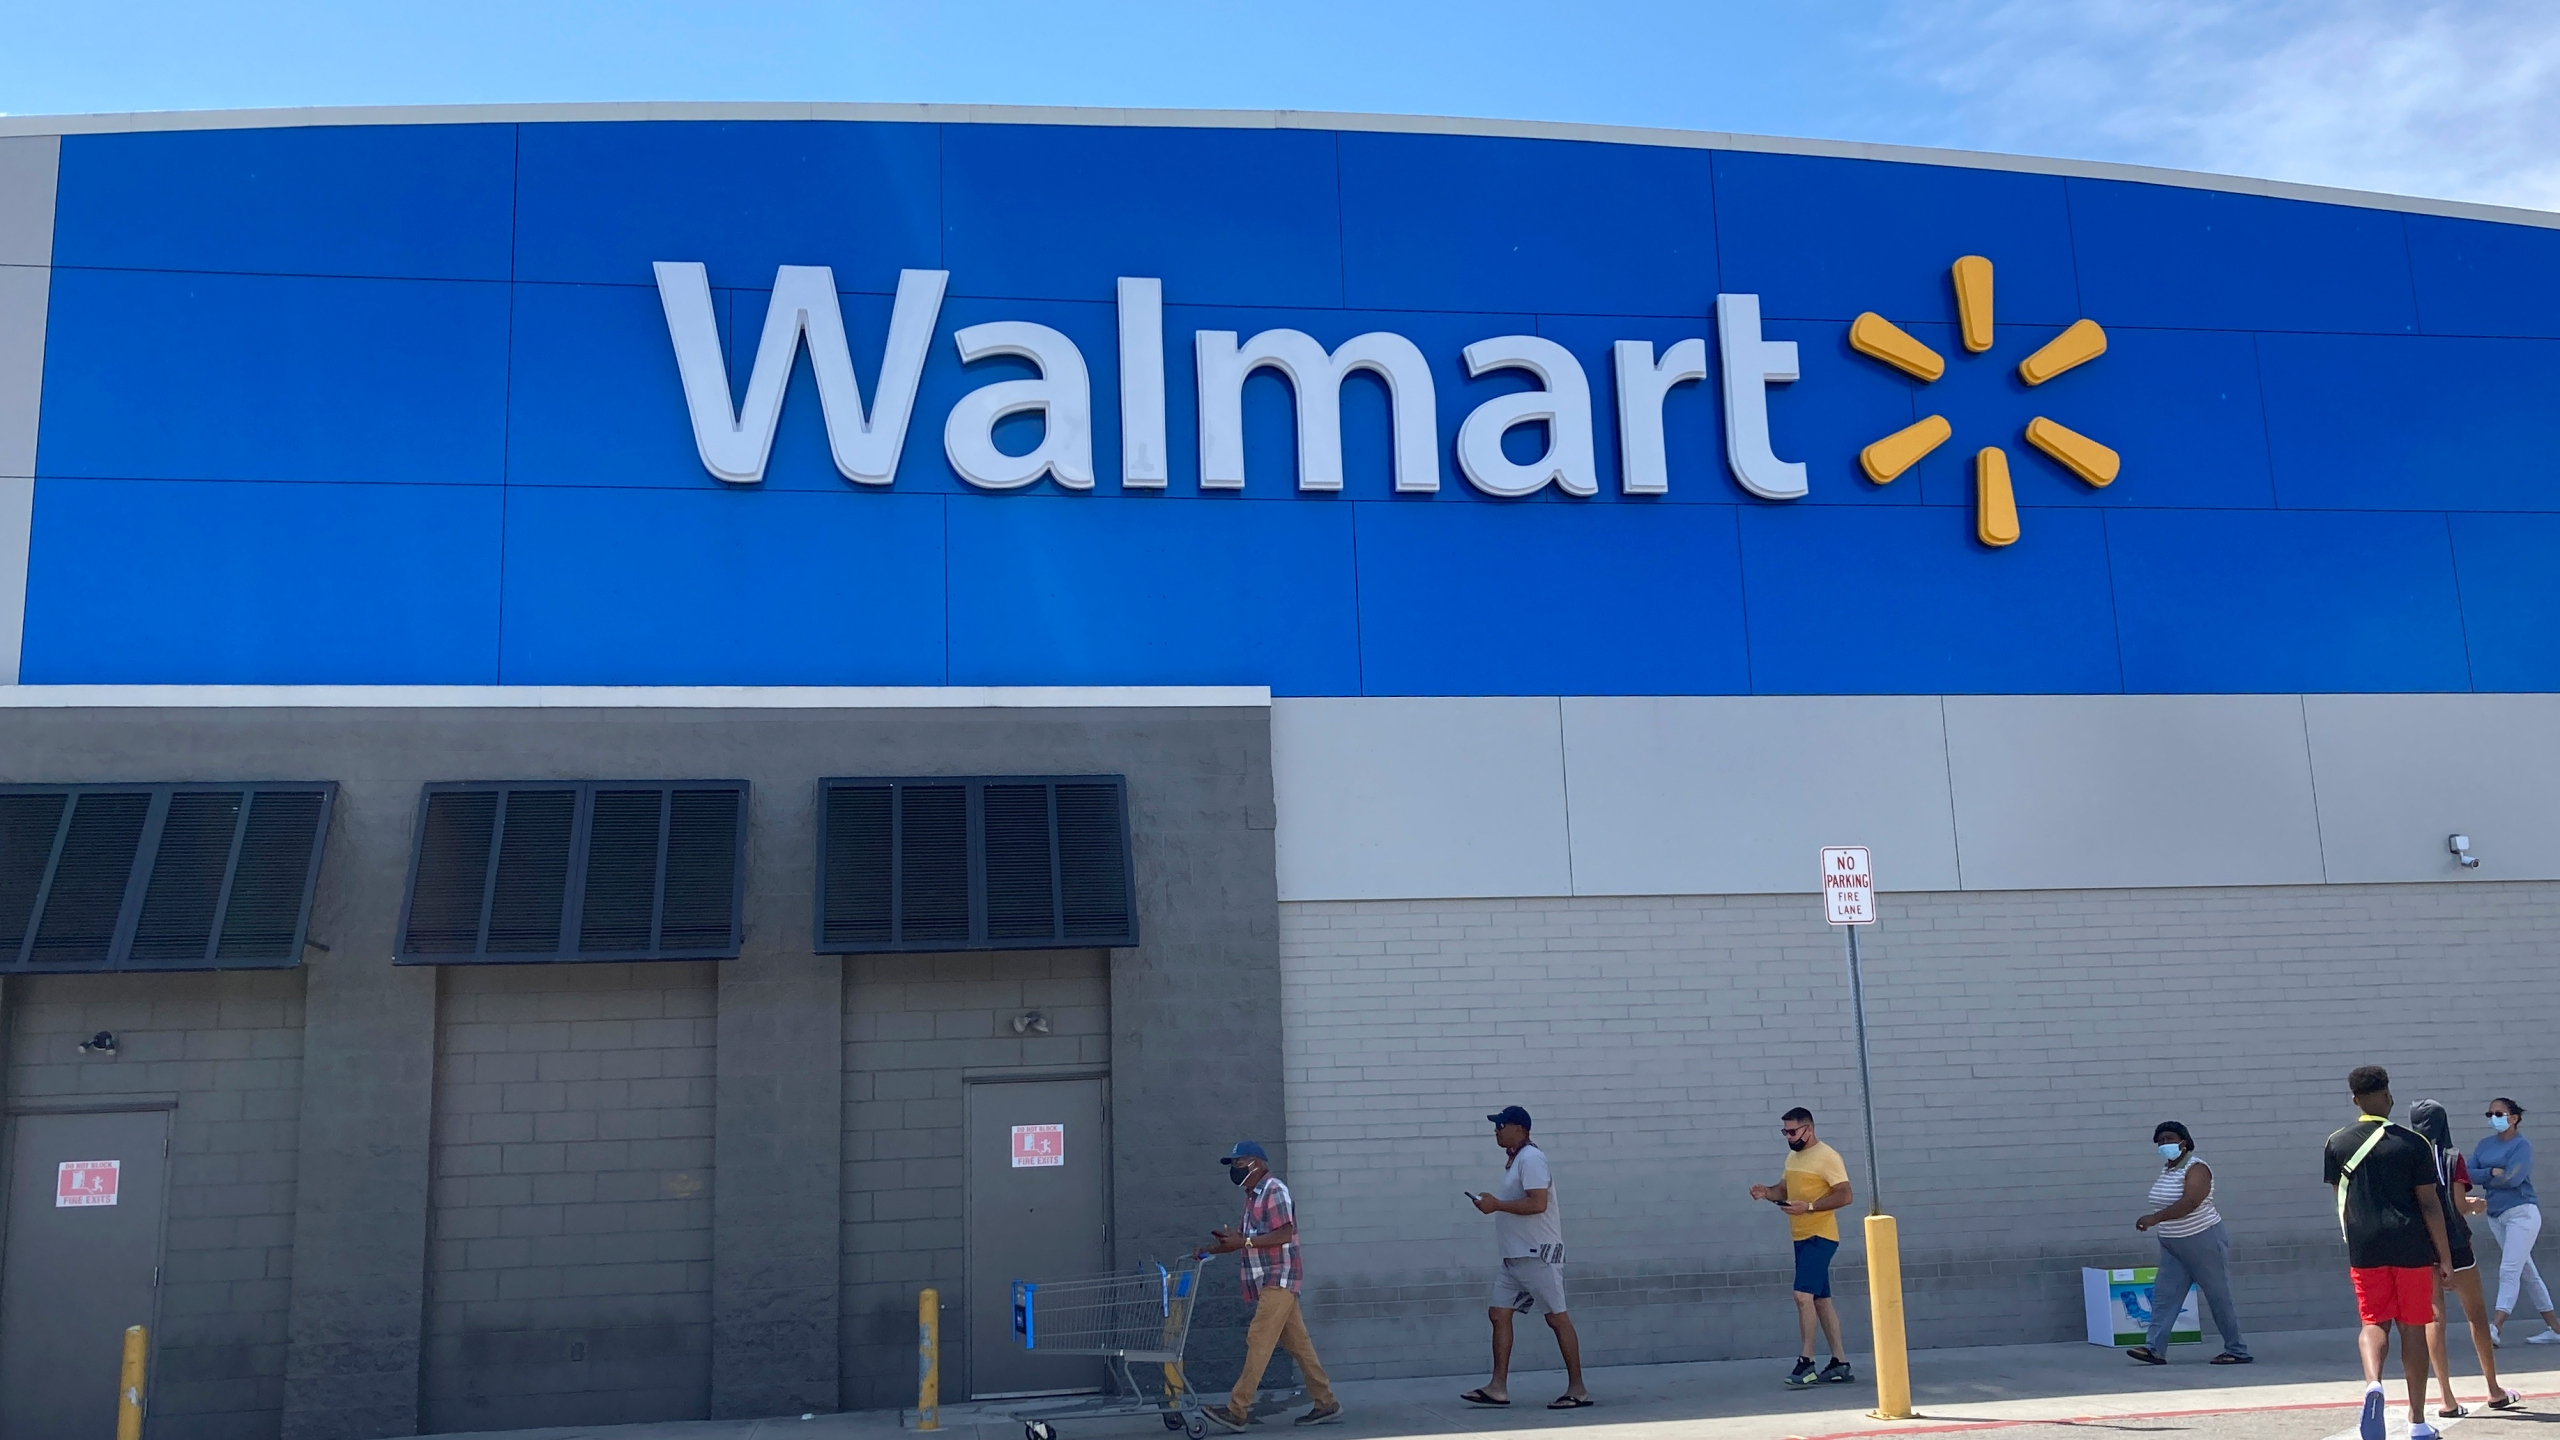 Customers wait in line outside a Walmart Supercenter store, due to COVID-19 restrictions on store capacity, Wednesday, April 7, 2021, in Miami. Walmart is moving more of its workers full time, with the goal of having two-thirds of its U.S. store hourly jobs be full-time with more consistent work schedules by early next year. With this move, announced Wednesday, April 14, the nation's largest private employer says it will have 740,000 of its 1.2 million U.S. Walmart hourly store workers be full-time by Jan. 31. (AP Photo/Wilfredo Lee)